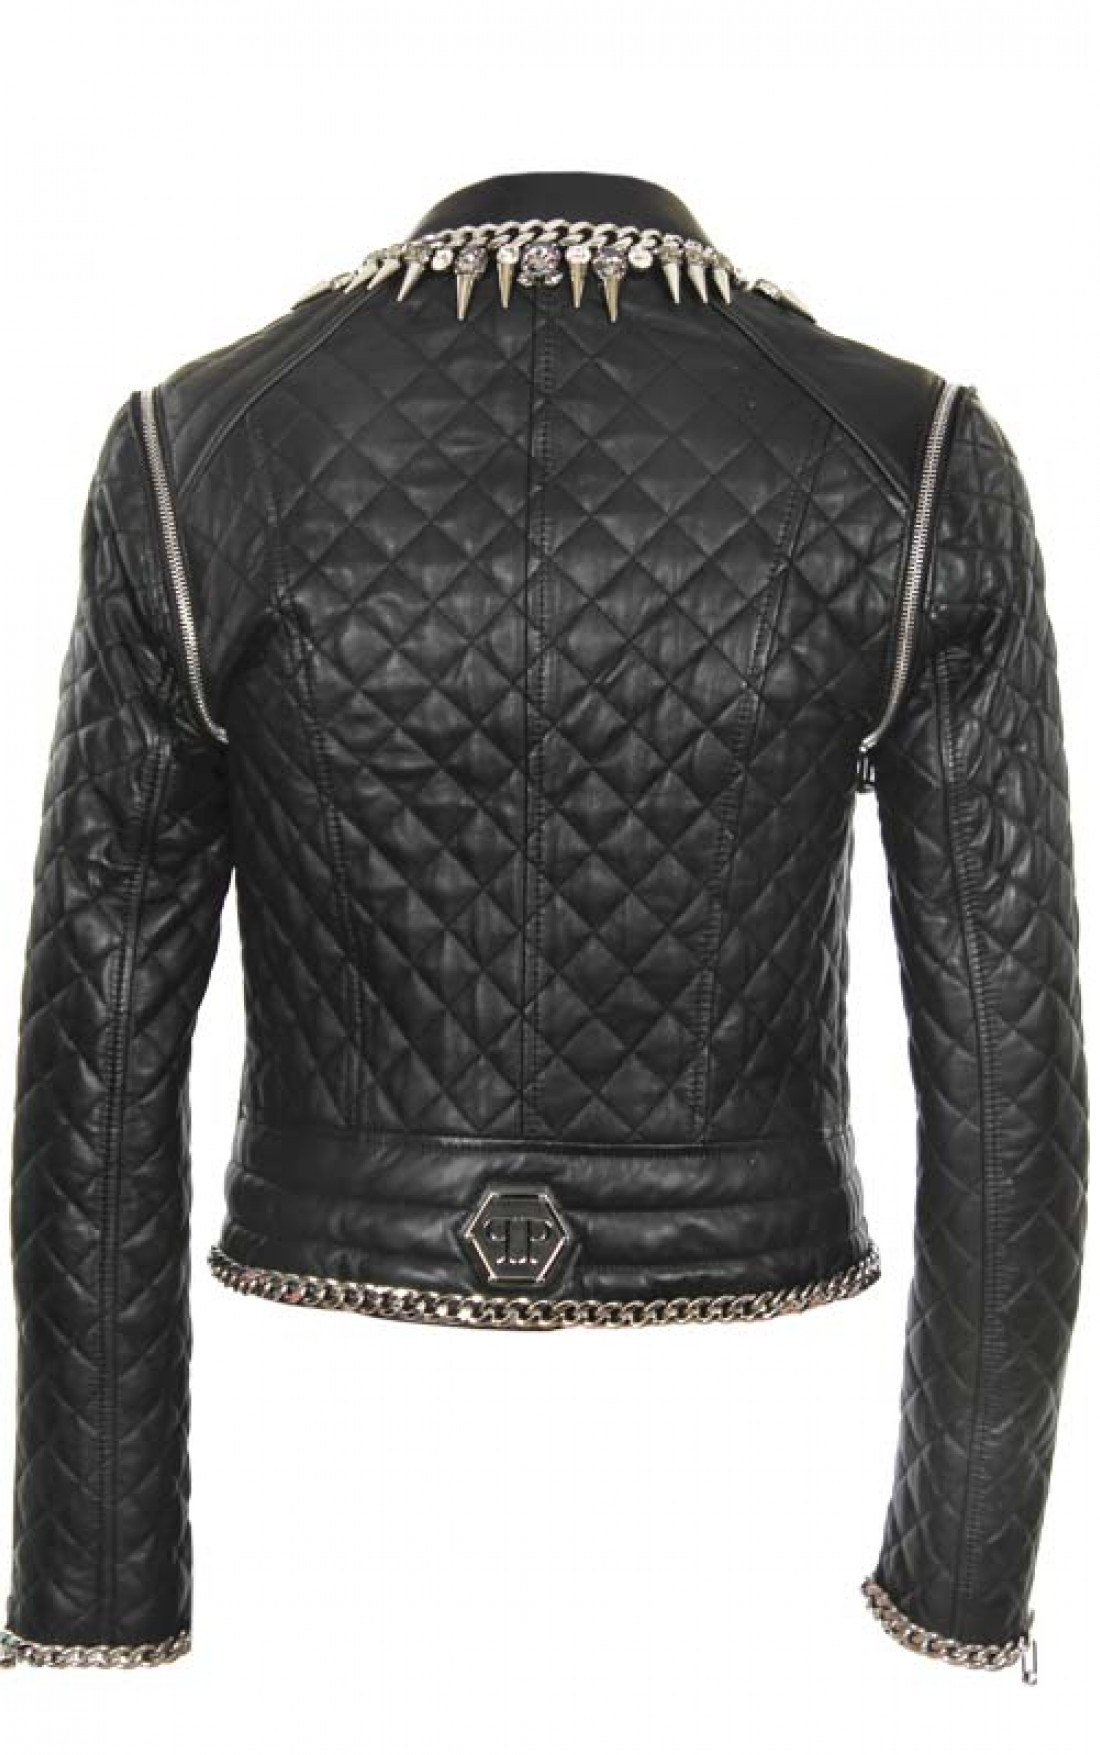 10e2d8b9a2 ... Philipp-Plein-Womens-Chained-Leather-Jacket-Black-Boudi- ...